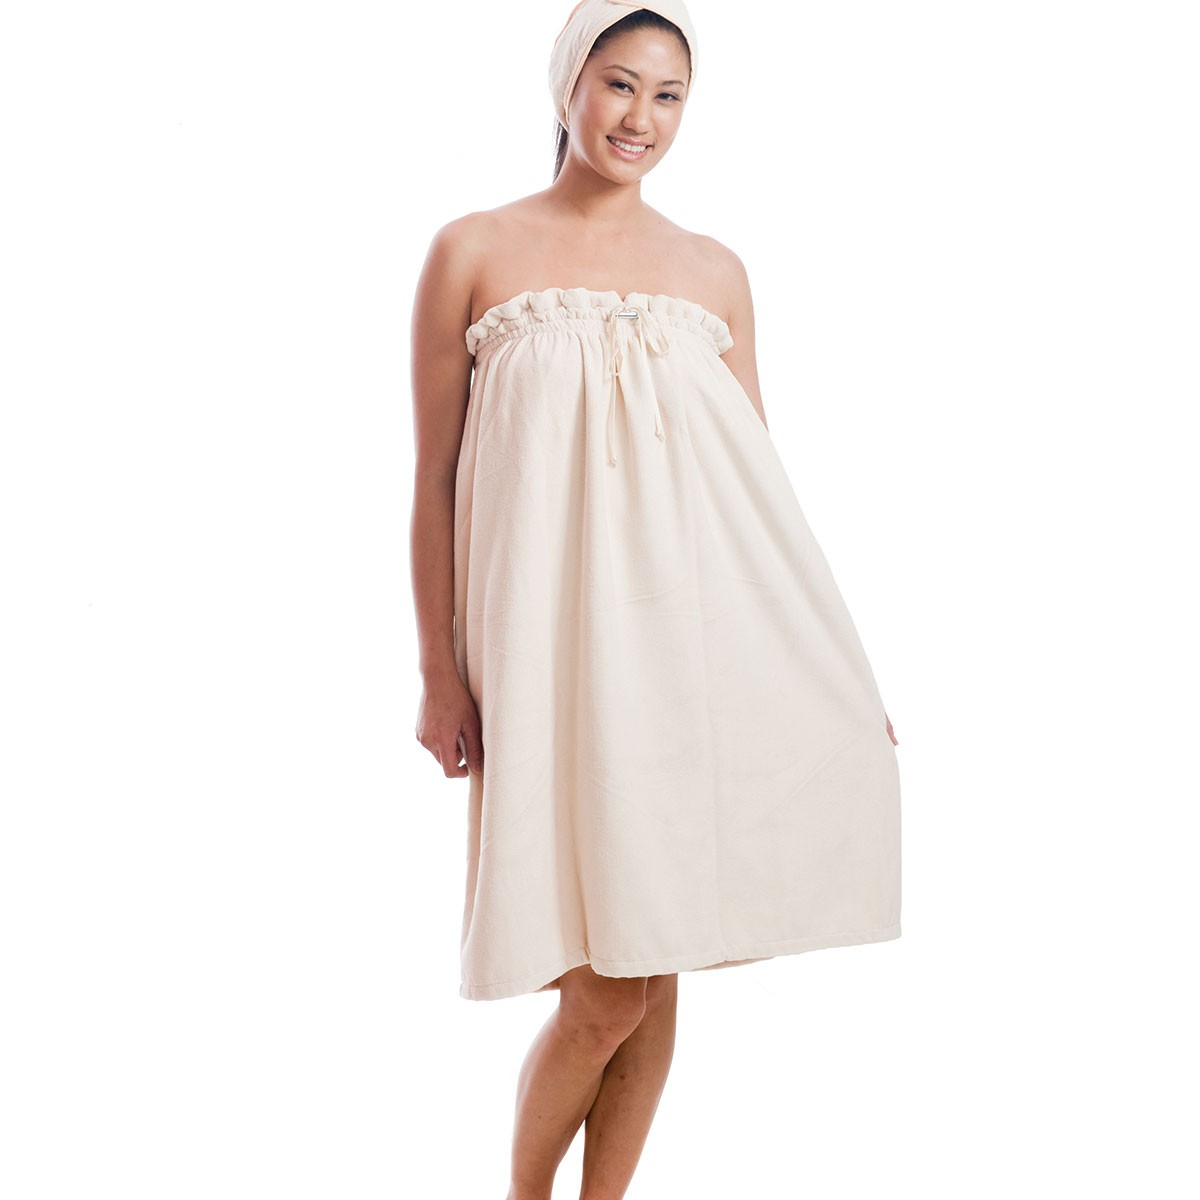 Original Microfiber Spa Wrap with Drawstring & Stopper